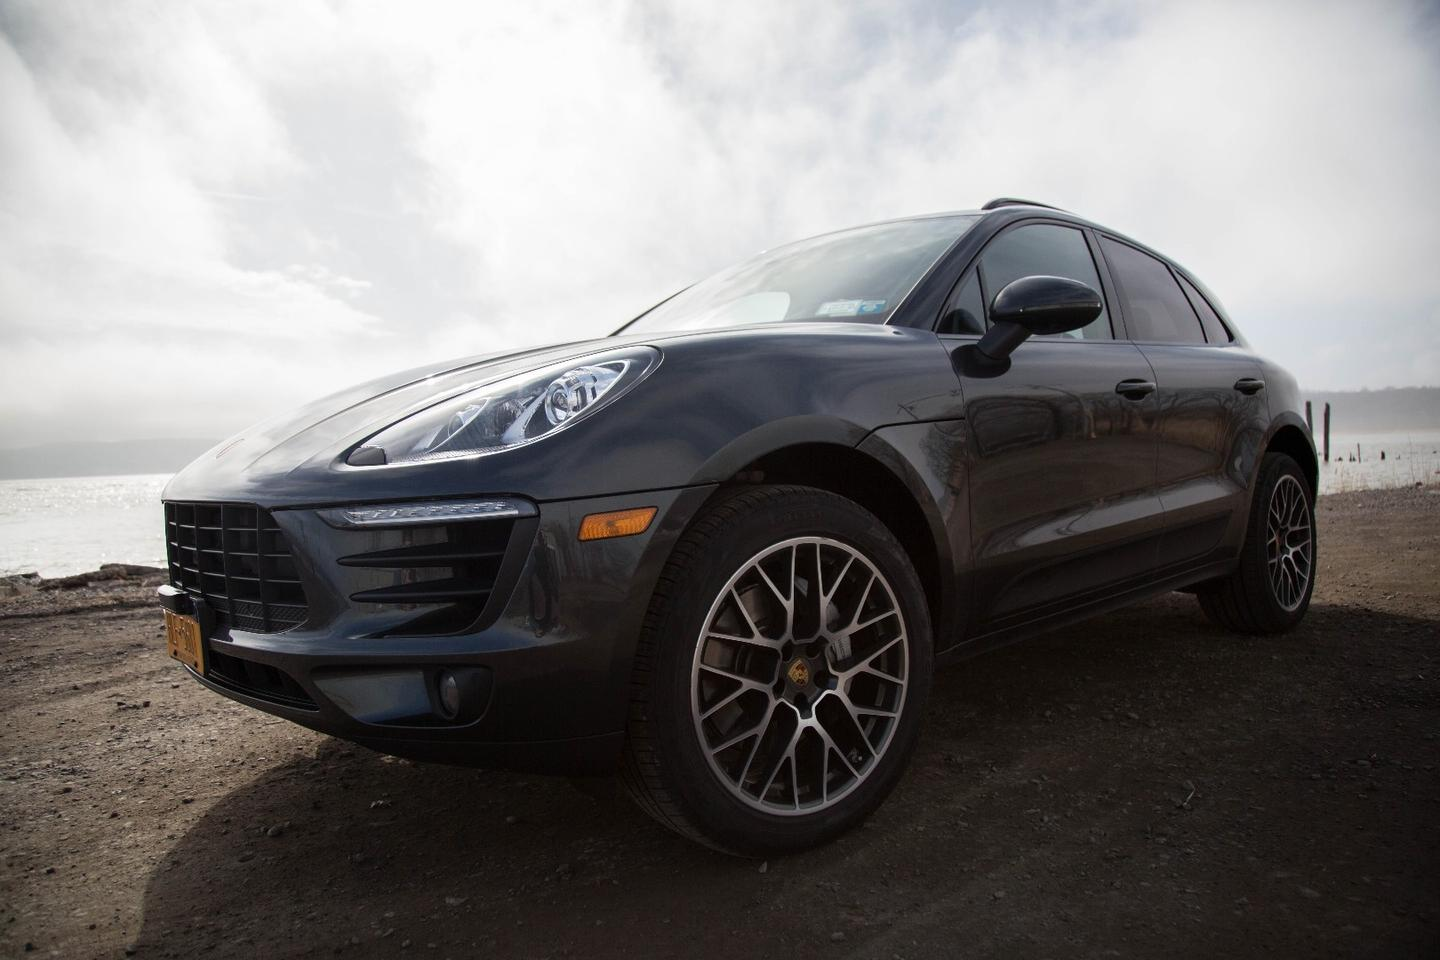 The new Porsche Macan S will hit 100 km/h (62 mph) in five seconds